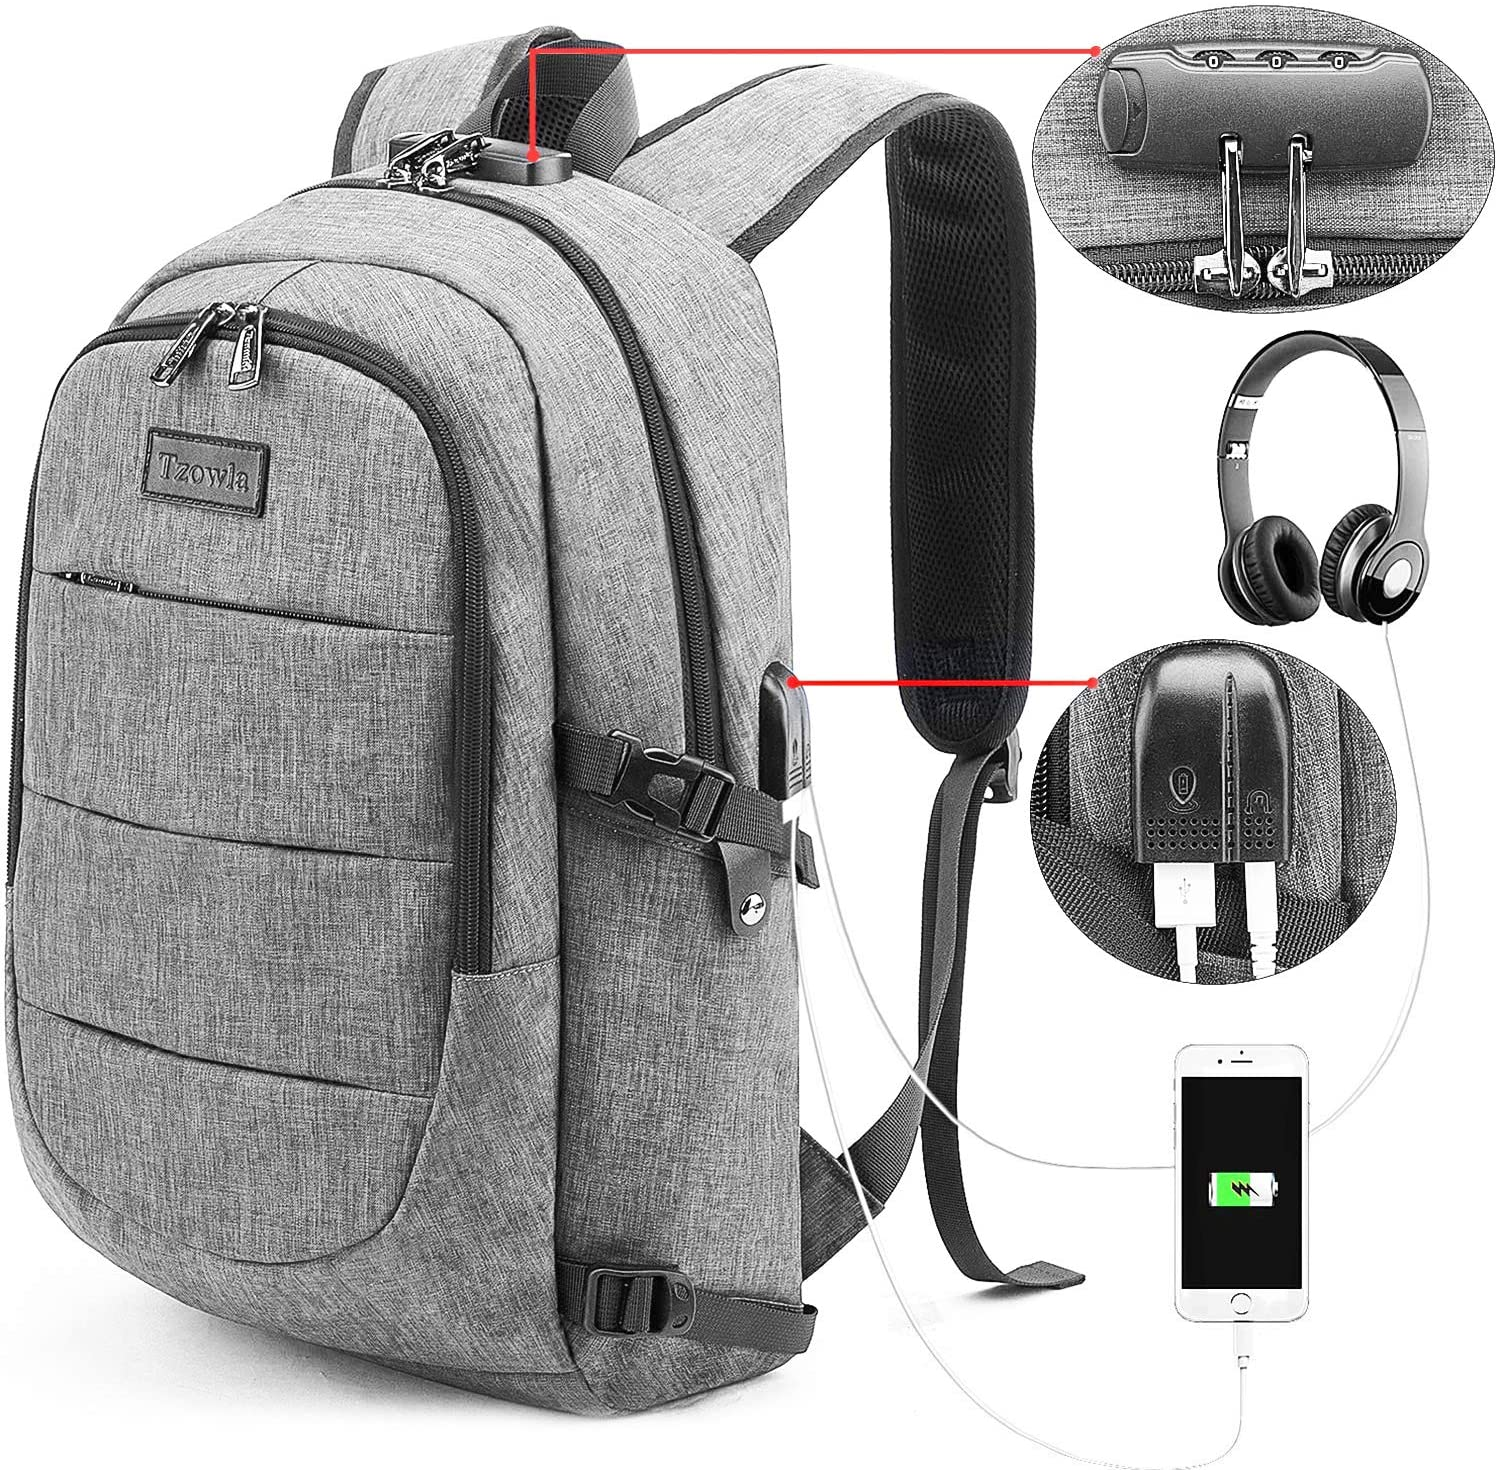 Laptop Backpack Water Resistant Anti-Theft Travel Bag with USB Charging Port and Lock 14/15.6 Inch Computer Business Backpacks for Women Men College School Student Gift,Bookbag Casual Hiking